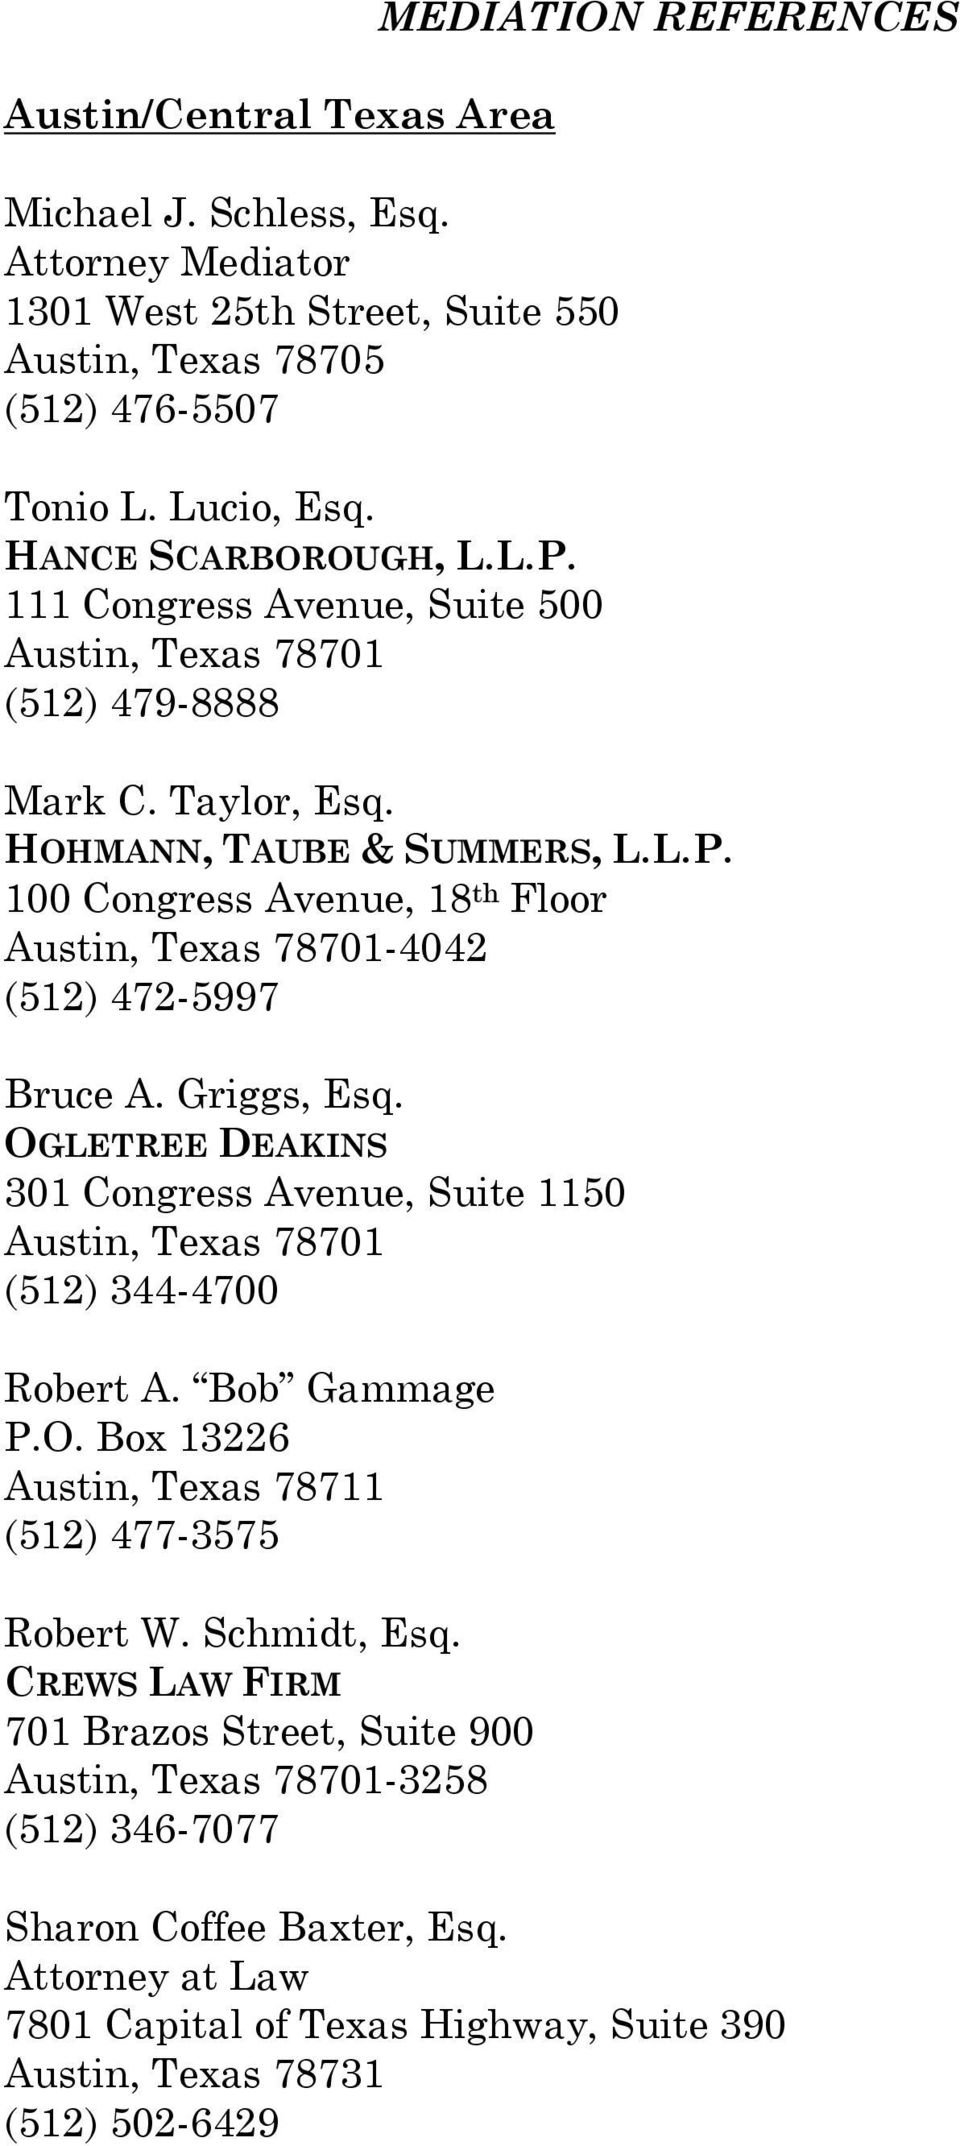 100 Congress Avenue, 18 th Floor Austin, Texas 78701-4042 (512) 472-5997 Bruce A. Griggs, Esq. OGLETREE DEAKINS 301 Congress Avenue, Suite 1150 Austin, Texas 78701 (512) 344-4700 Robert A.